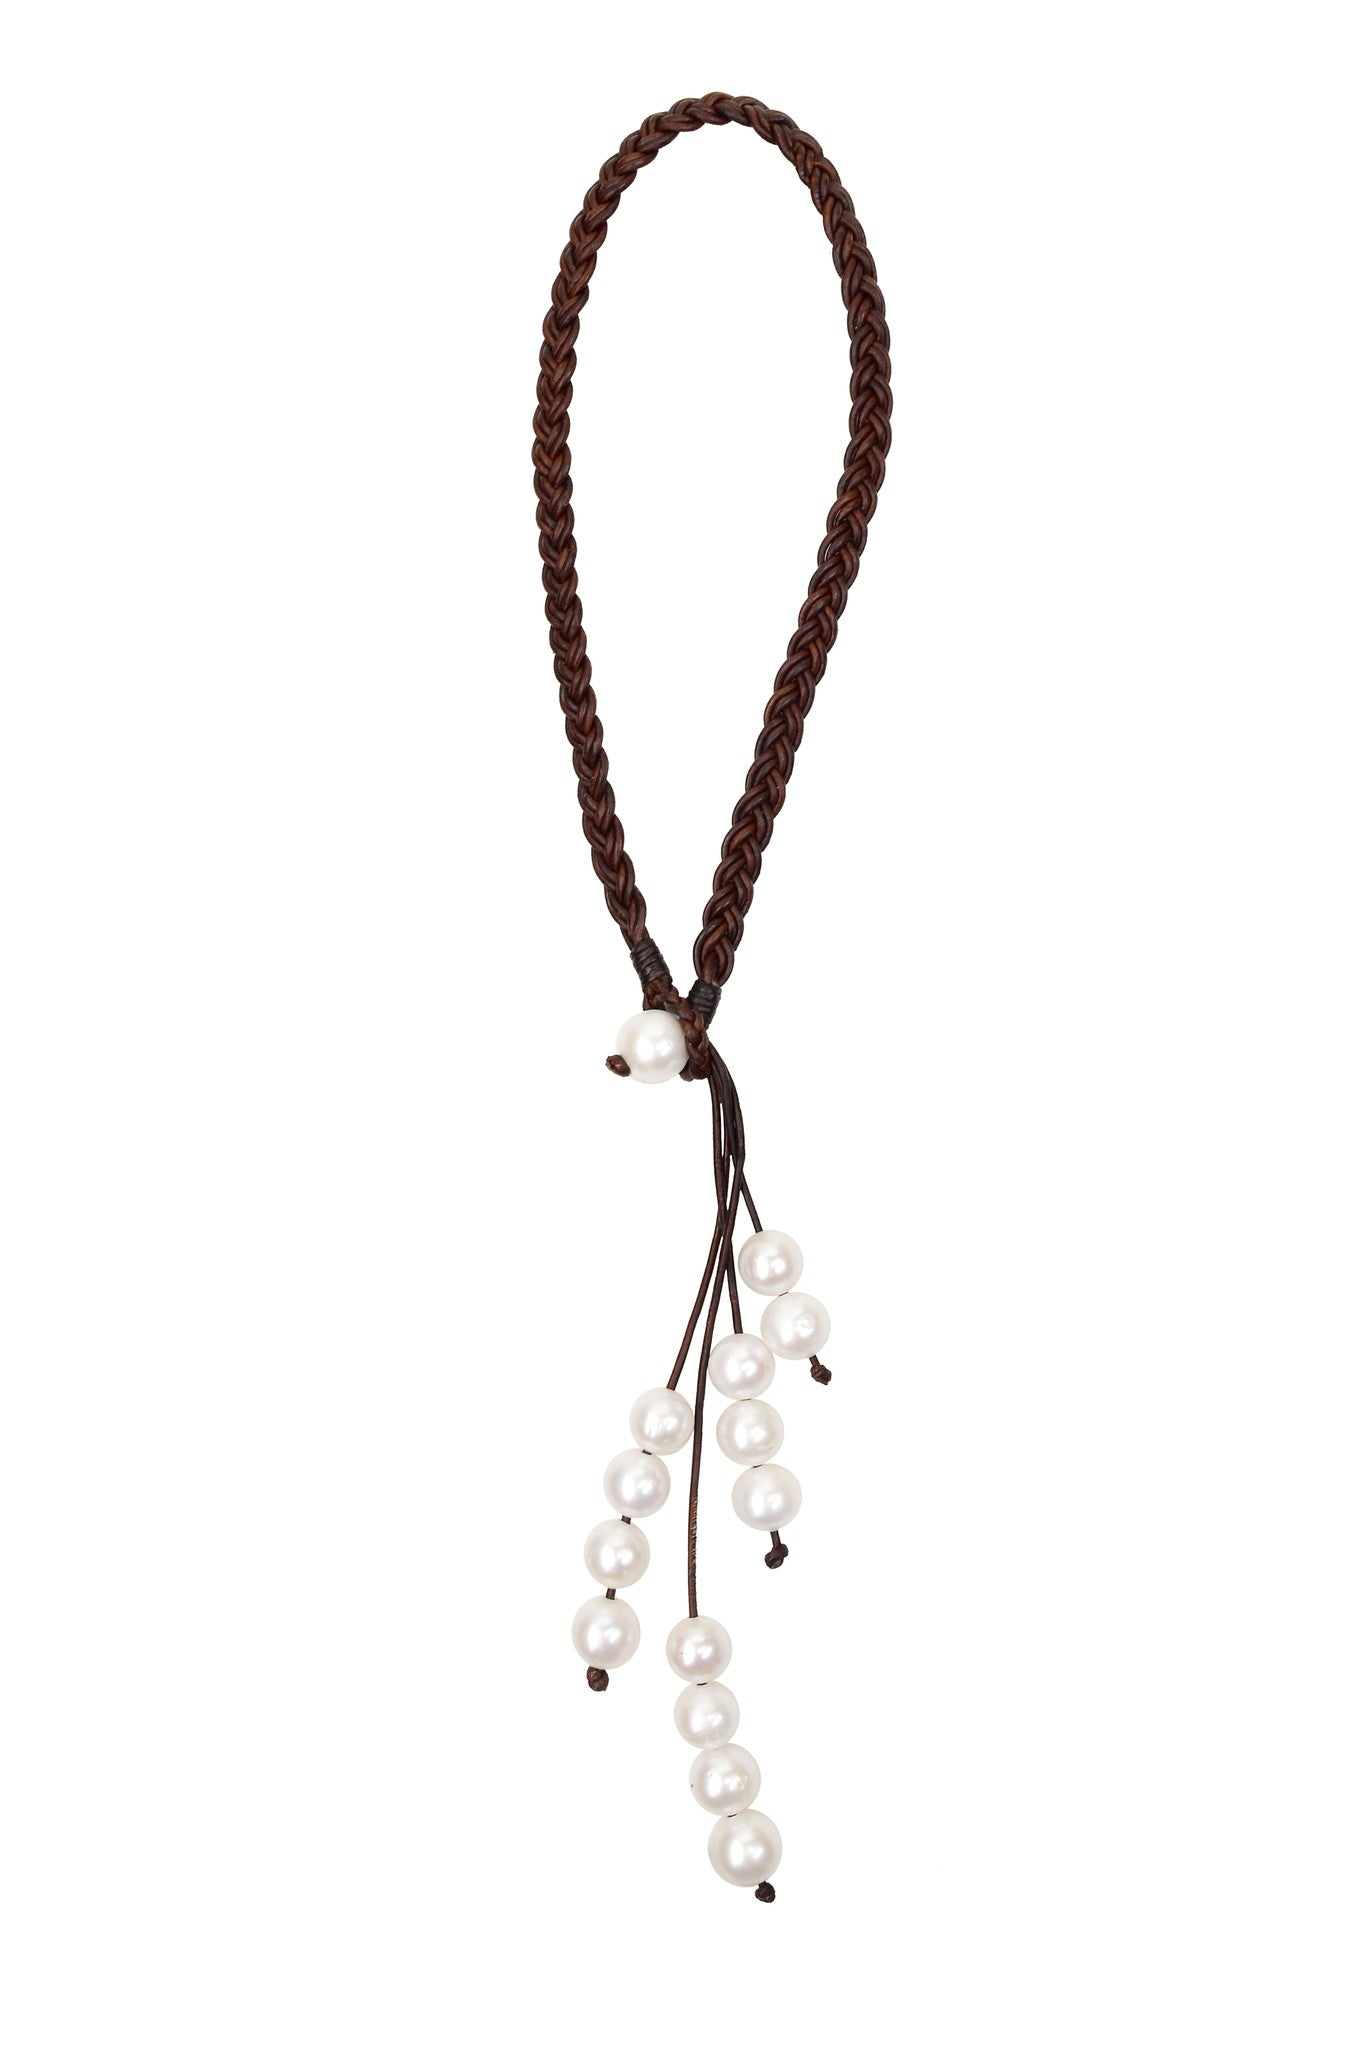 Fountain Necklace, Freshwater - Hottest Designer Pearl and Leather Jewelry | VINCENT PEACH